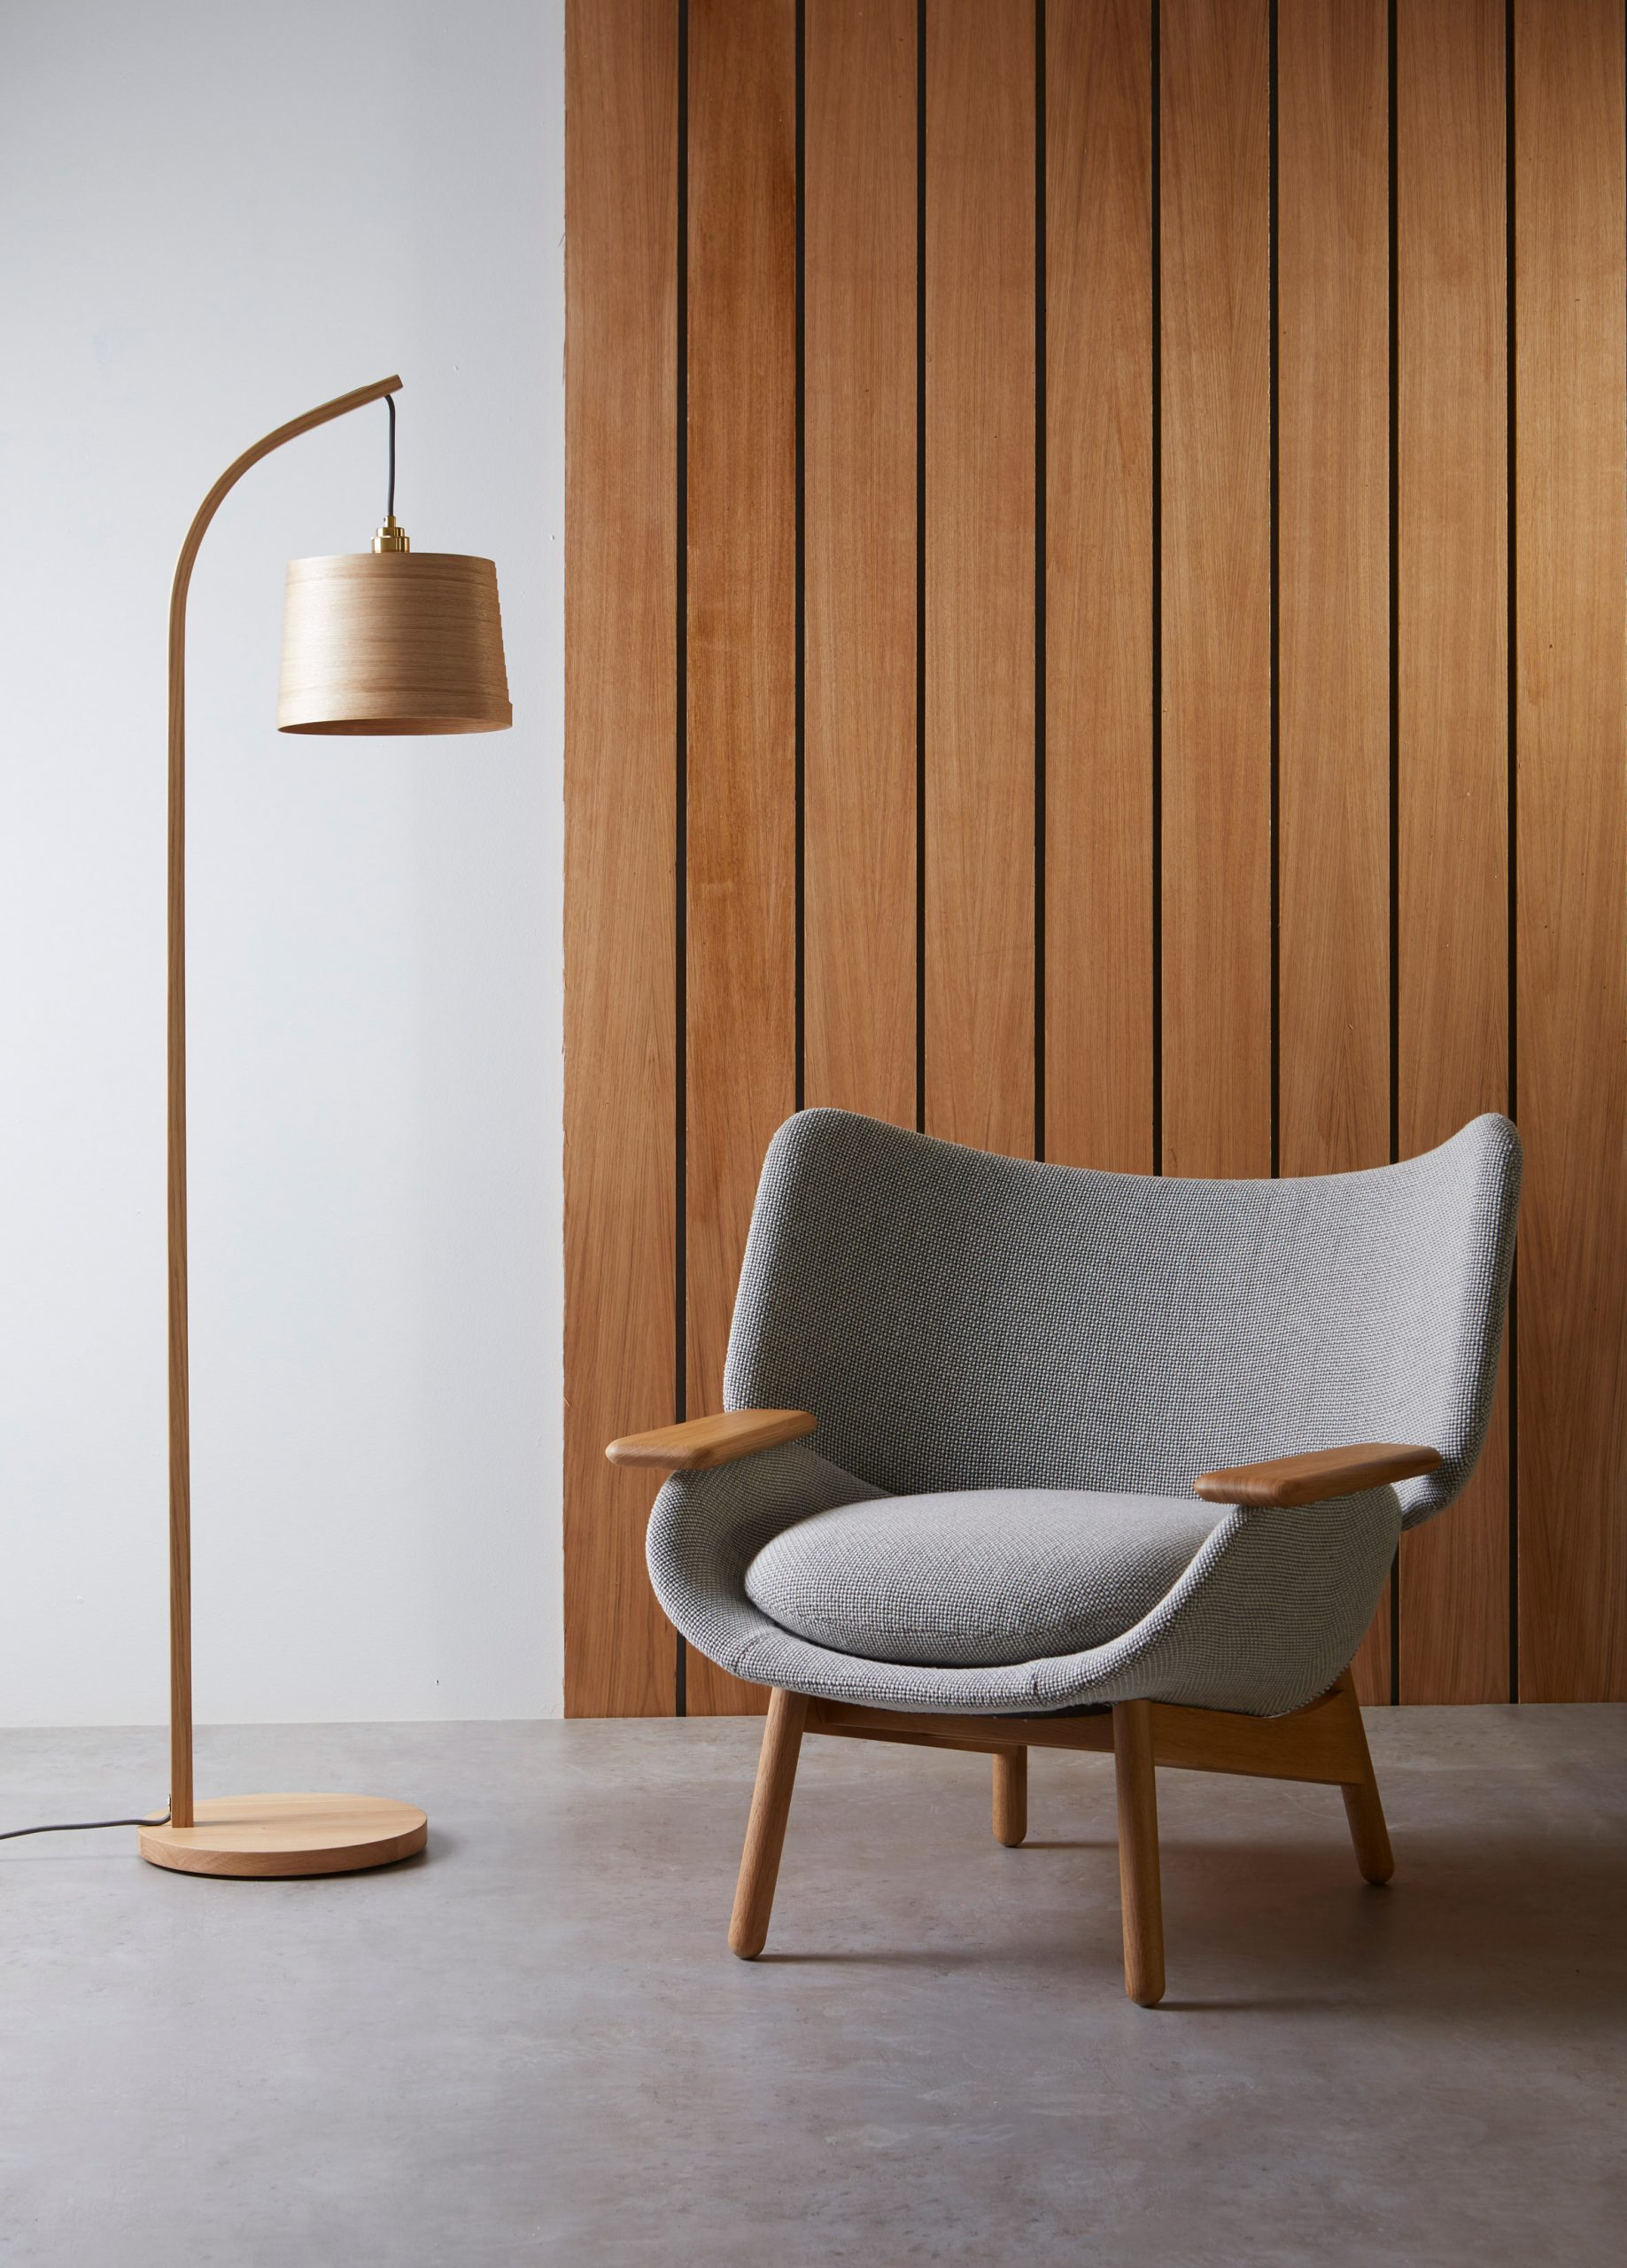 A chair upholstered with Camira Flax fabric by Camira